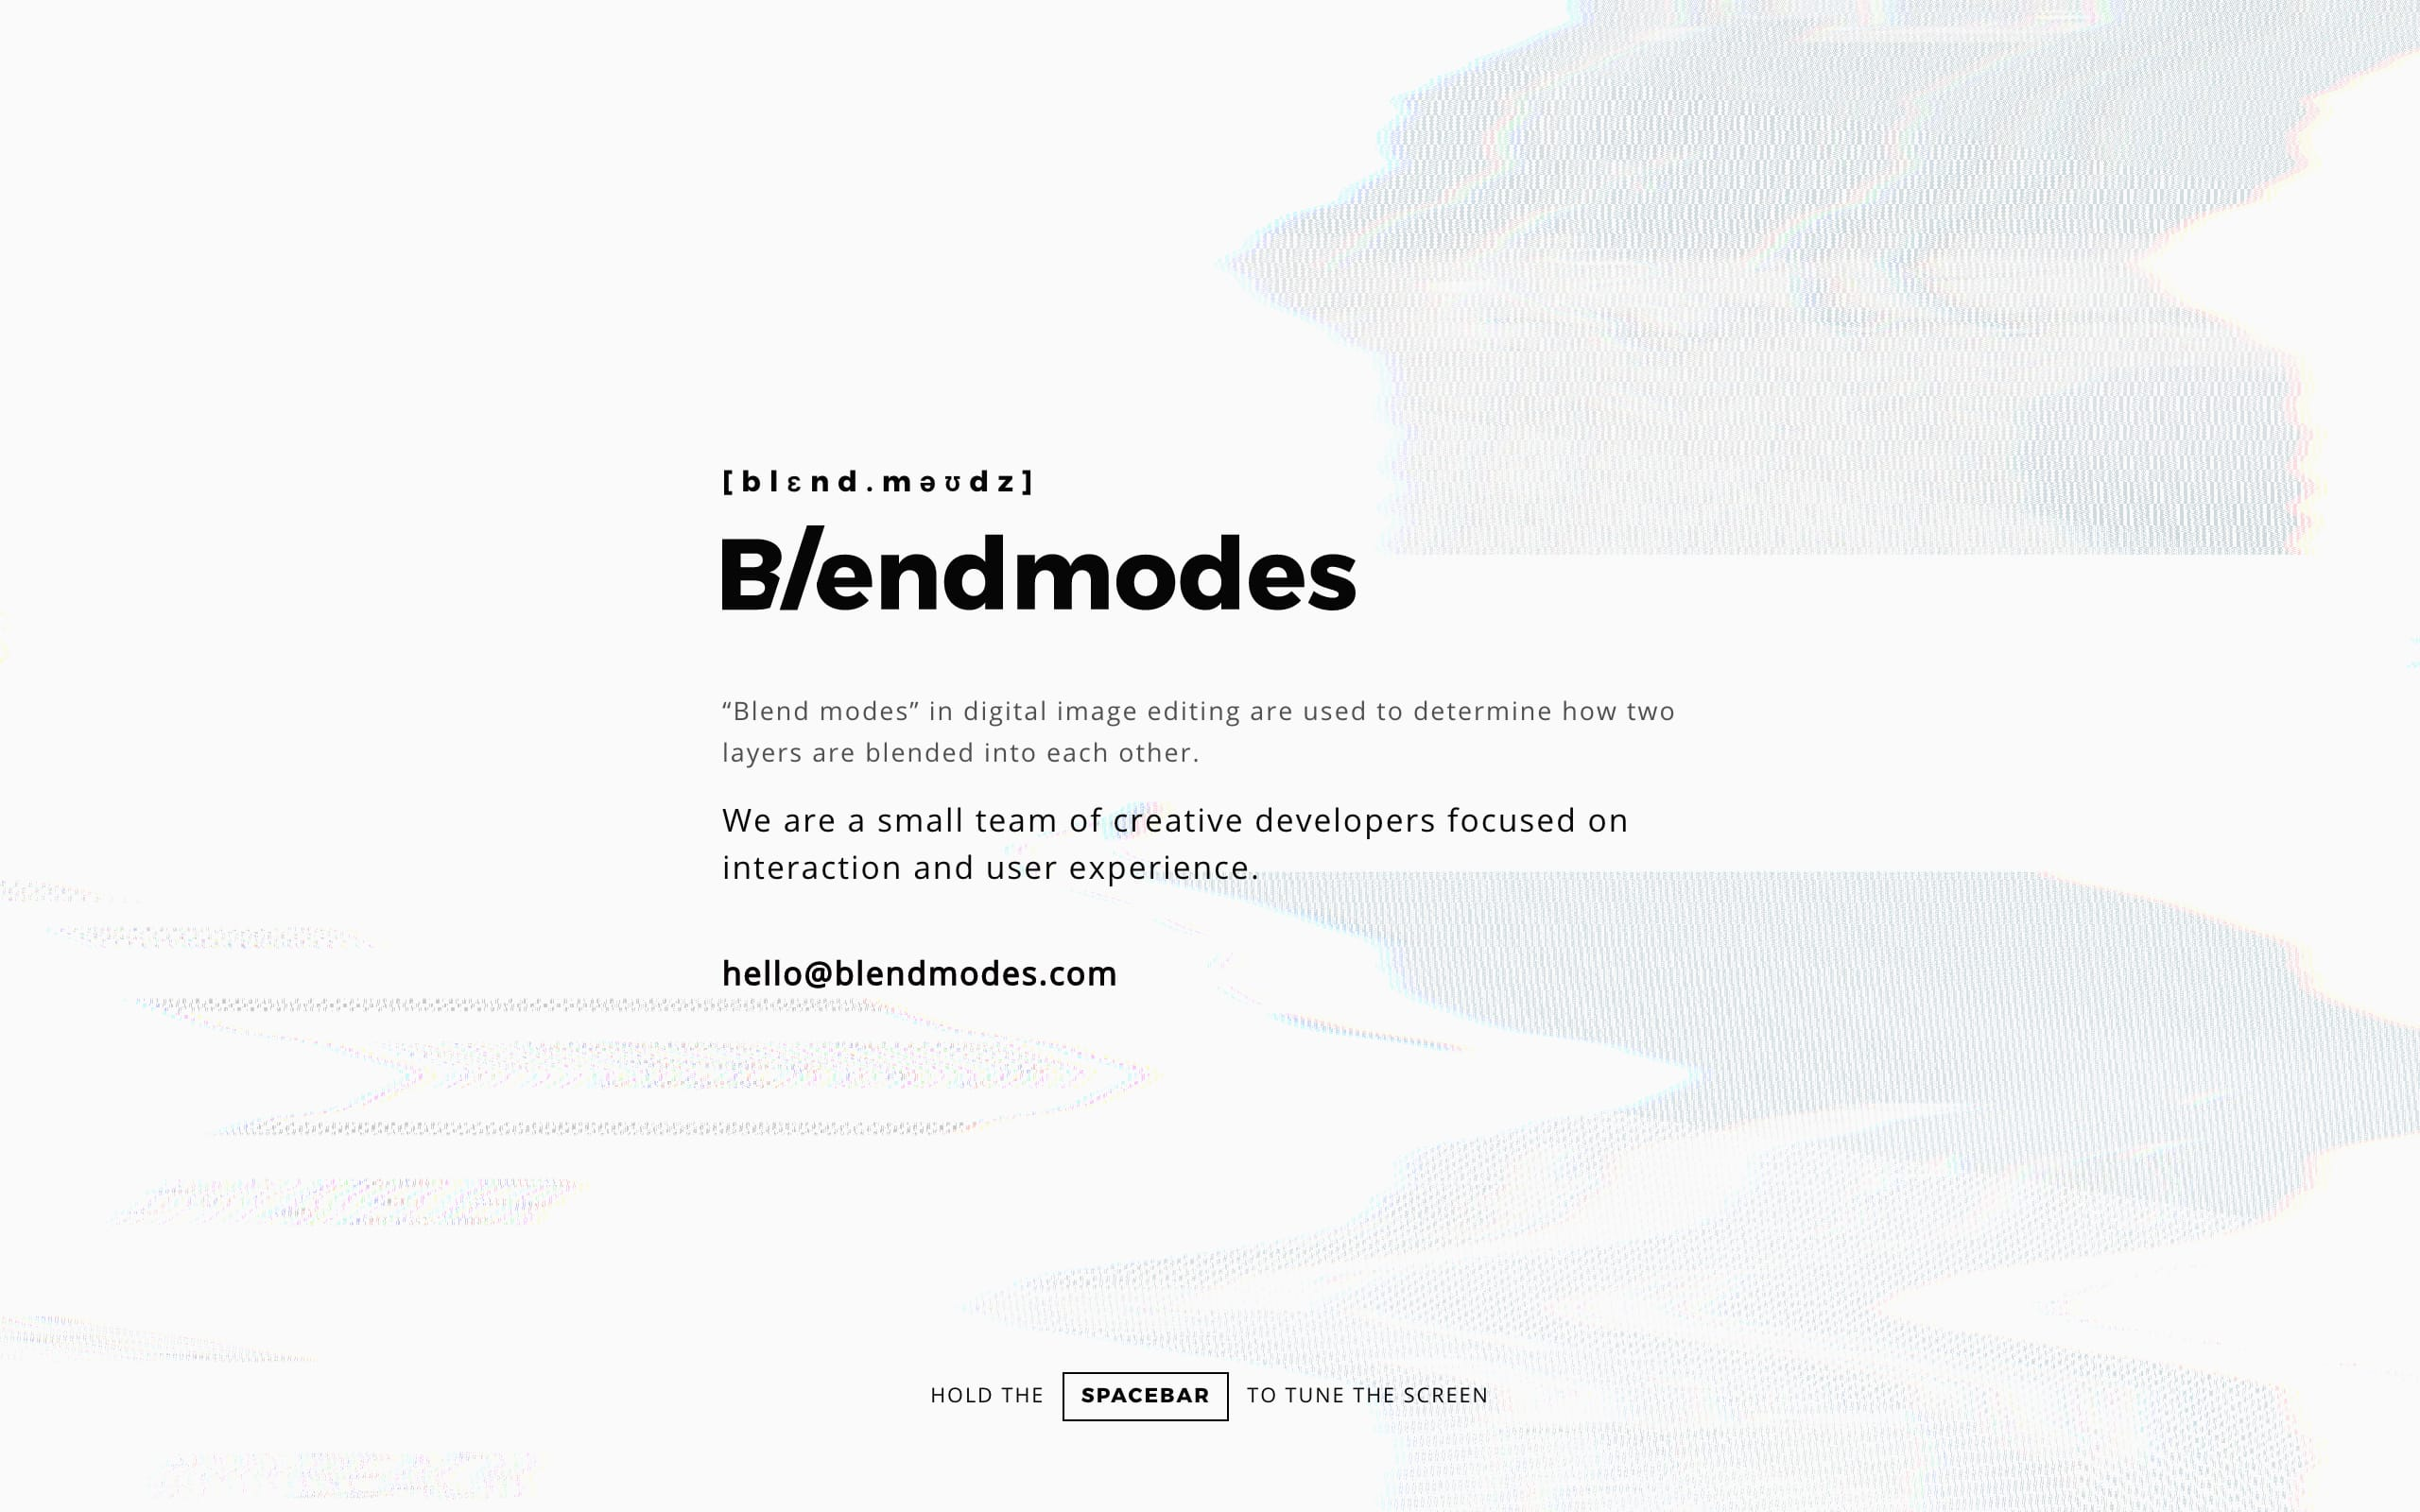 Blendmodes Studio Website Screenshot